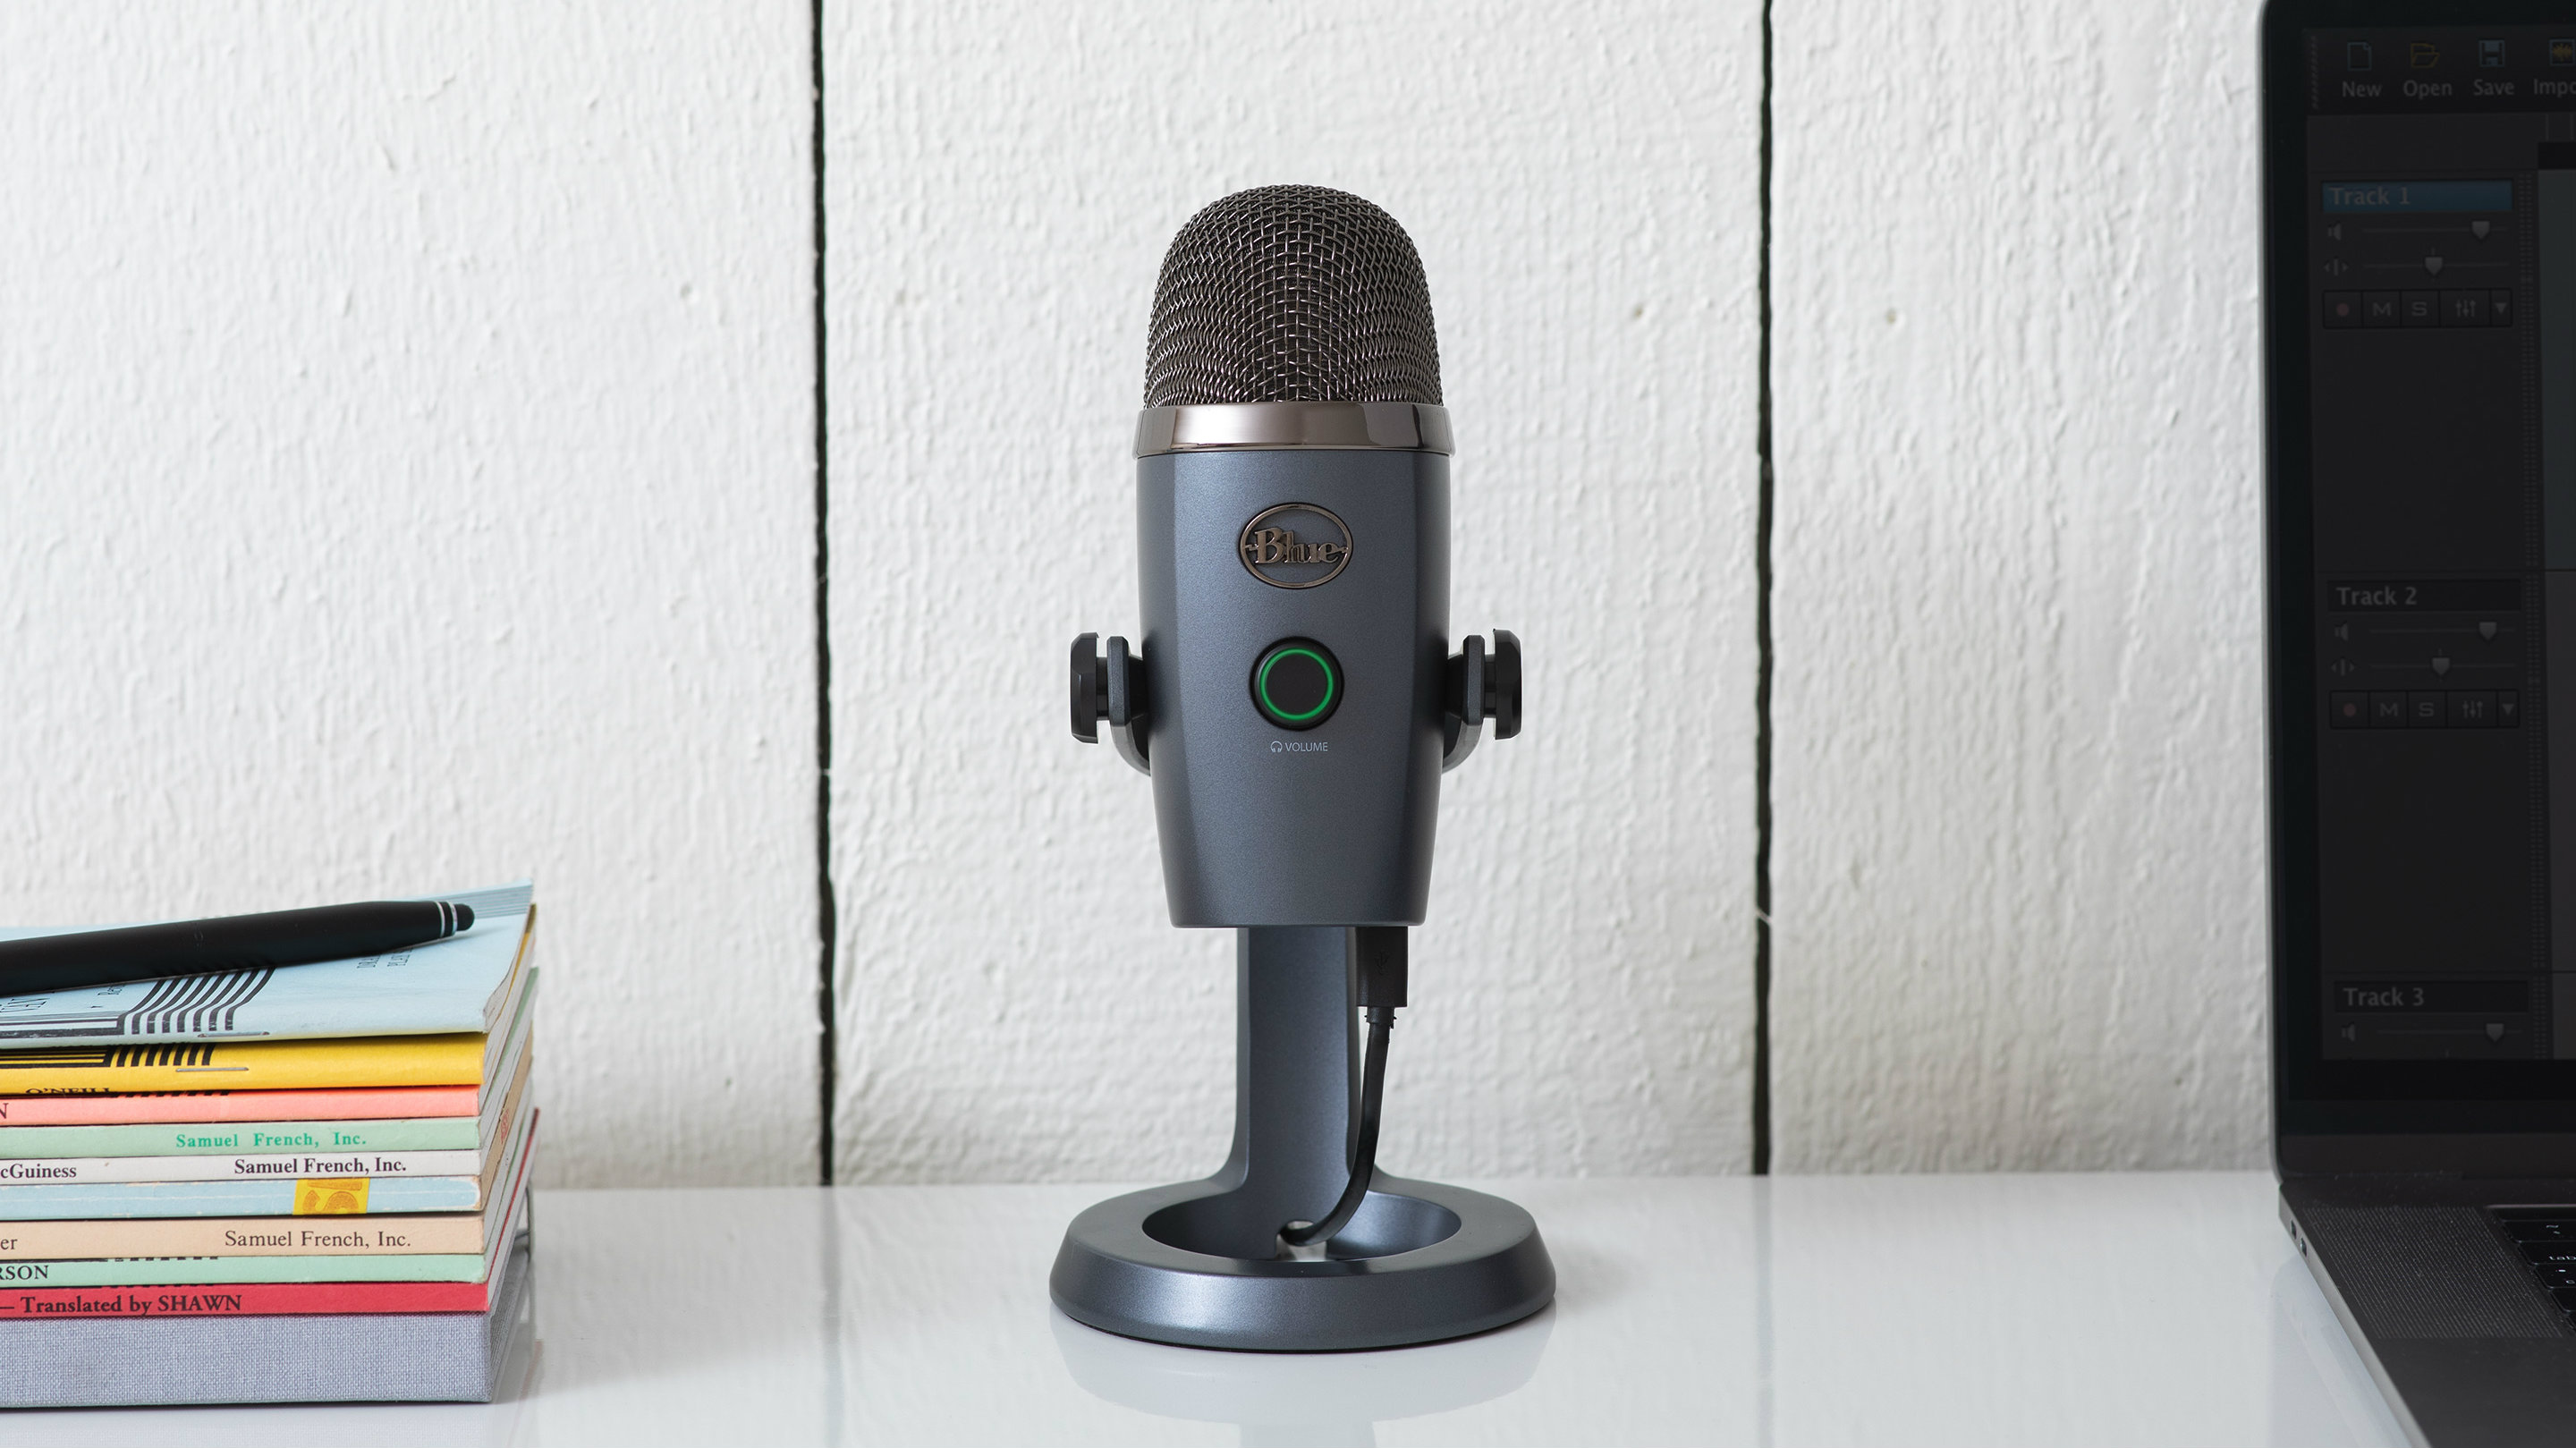 Blue Yeti Nano microphone: should I buy it for podcasting?